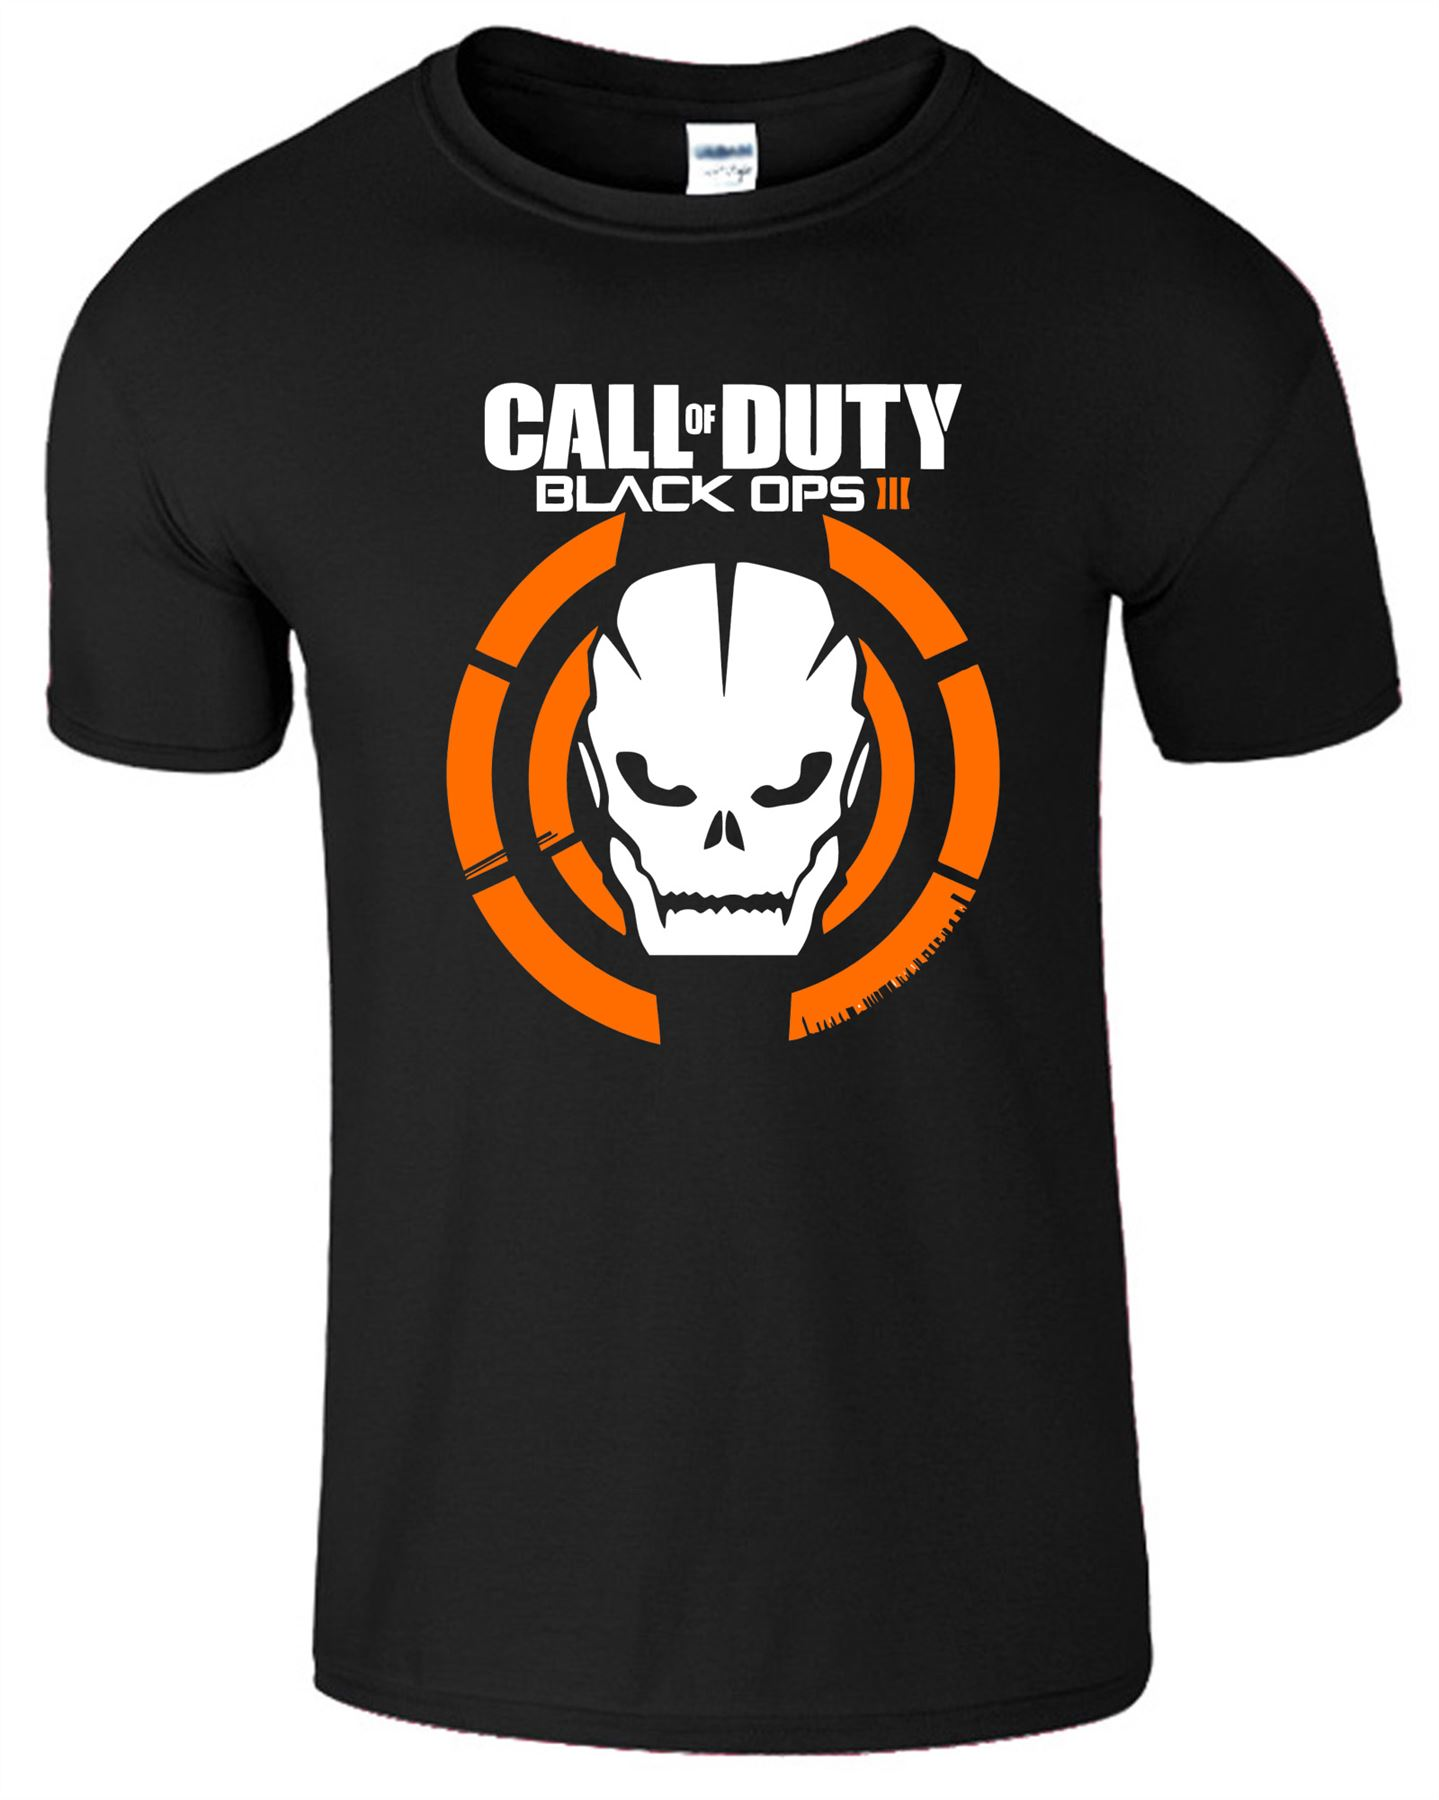 Duty-Black-Ops-Xbox-PS3-PS4-Game-Logo-With-Skull-Mens-Tshirt-Tee-Top-Gift